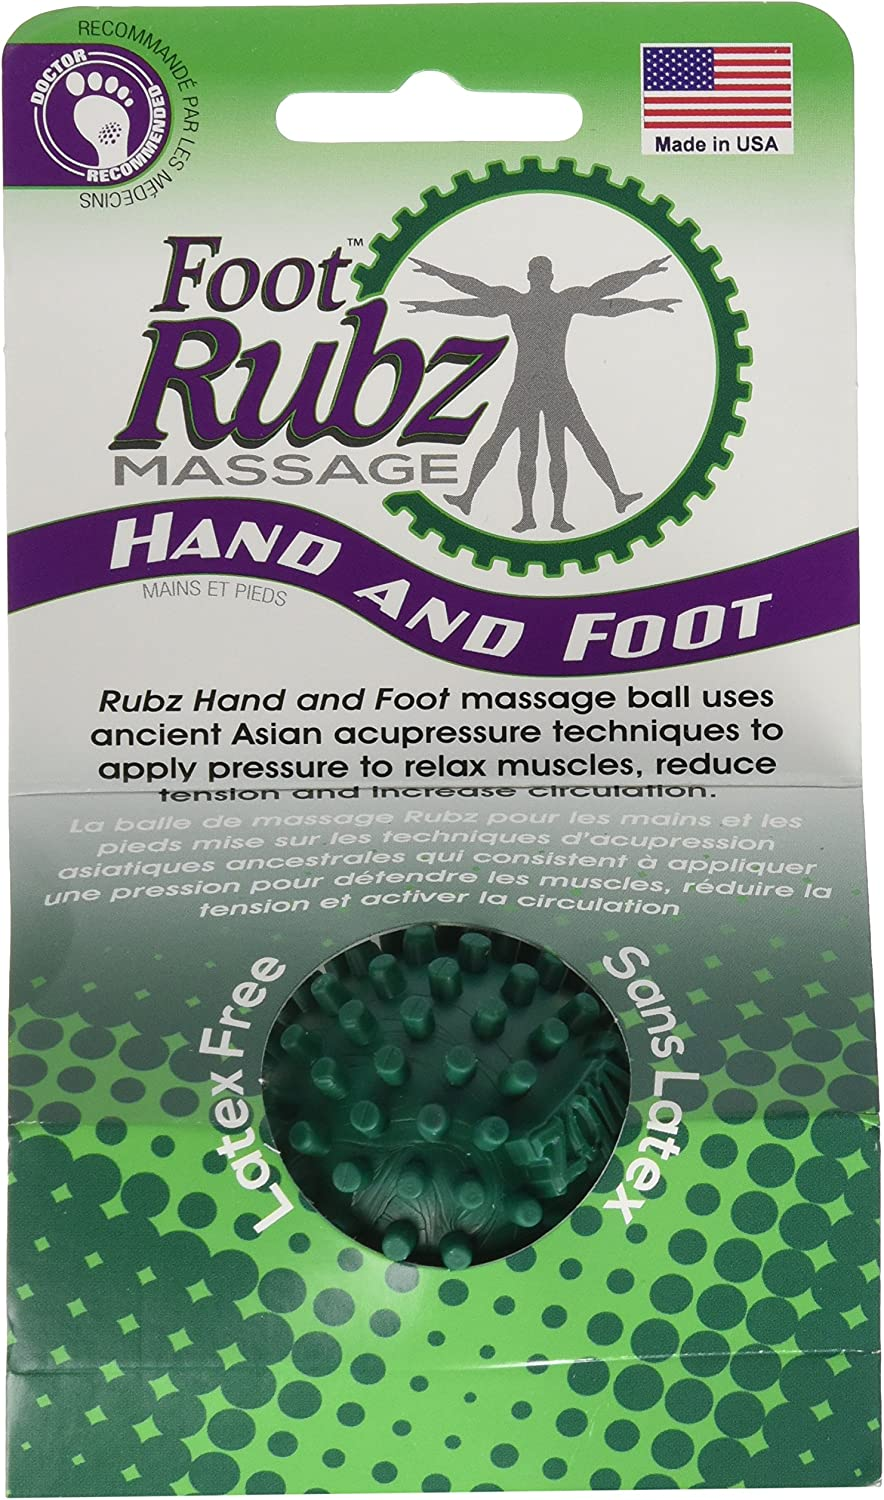 Due North Industrial Foot Rubz Foot Hand & Back Massage Ball, Relief from Plantar Fasciitis, Green